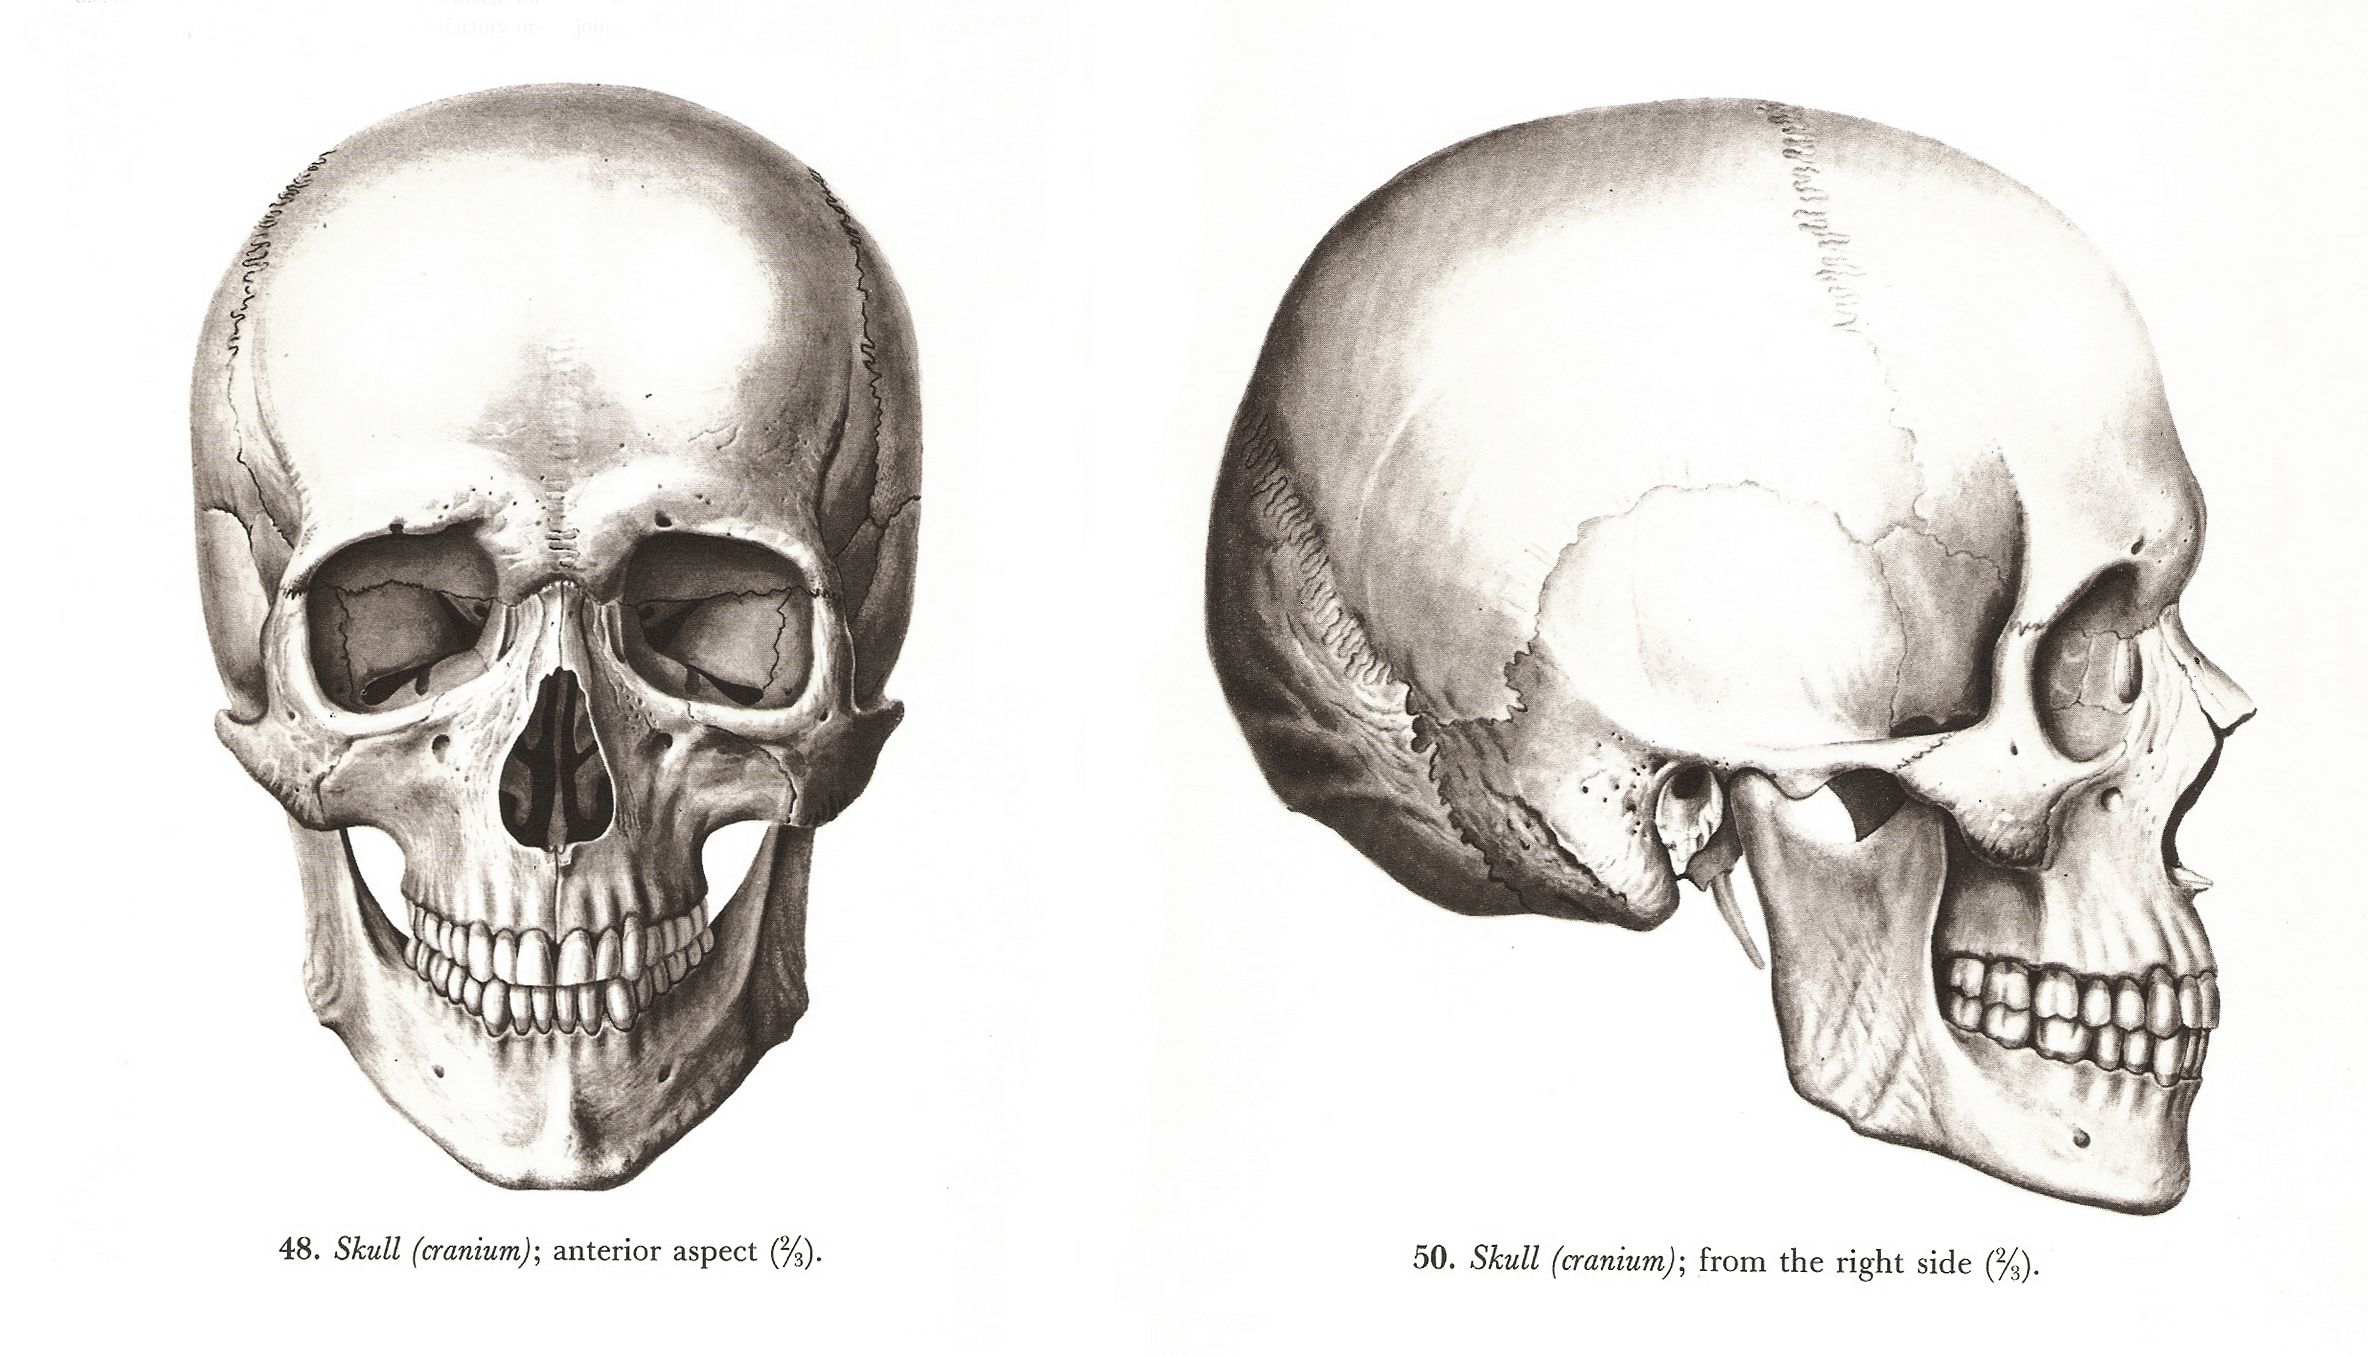 human skull (cranium), anterior and right side view, \